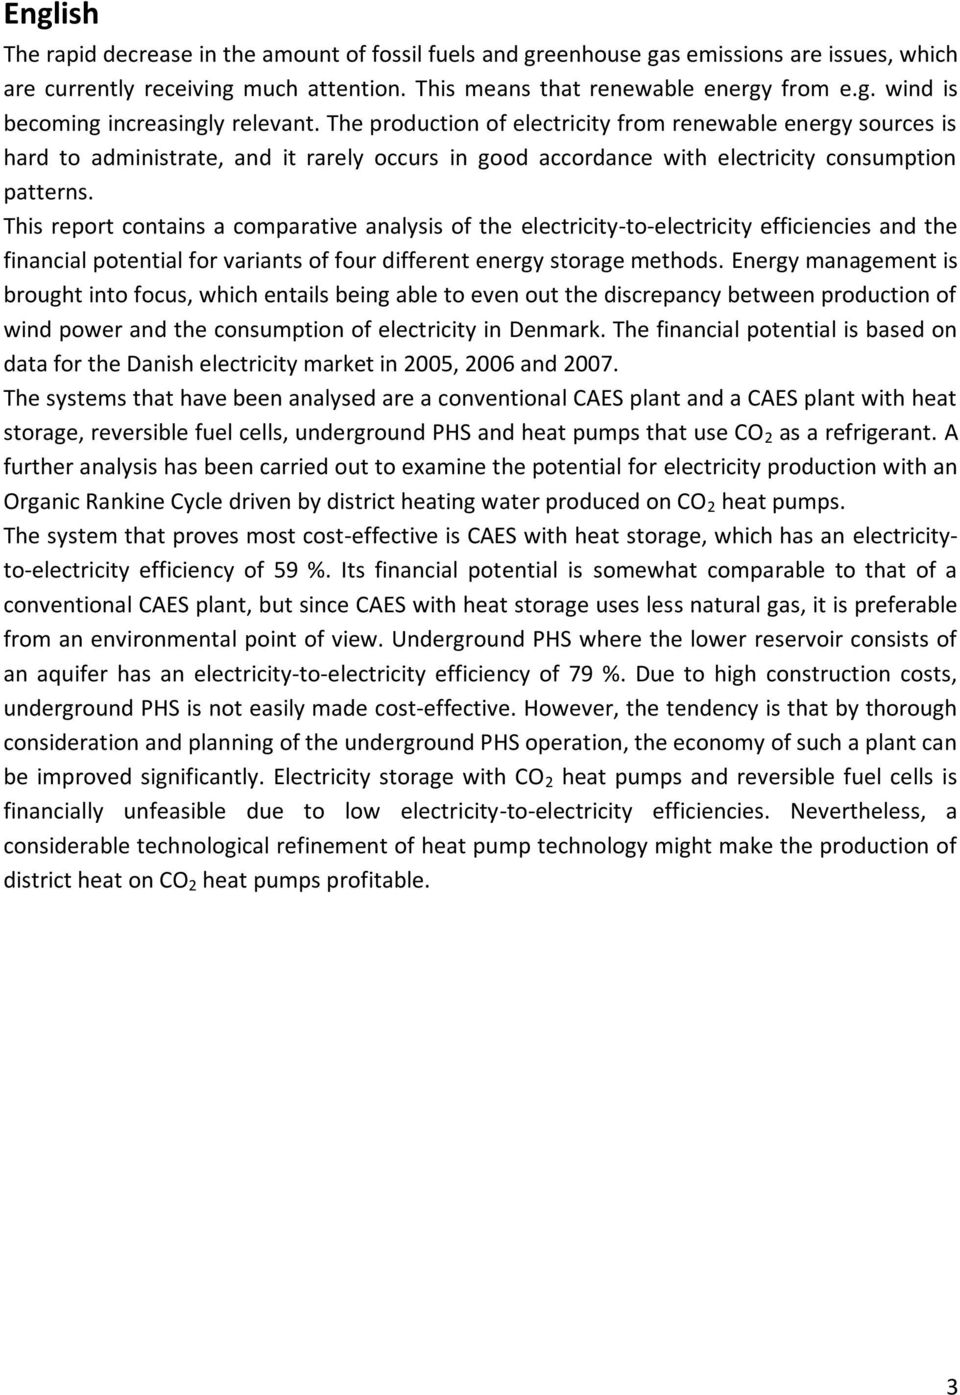 This report contains a comparative analysis of the electricity-to-electricity efficiencies and the financial potential for variants of four different energy storage methods.